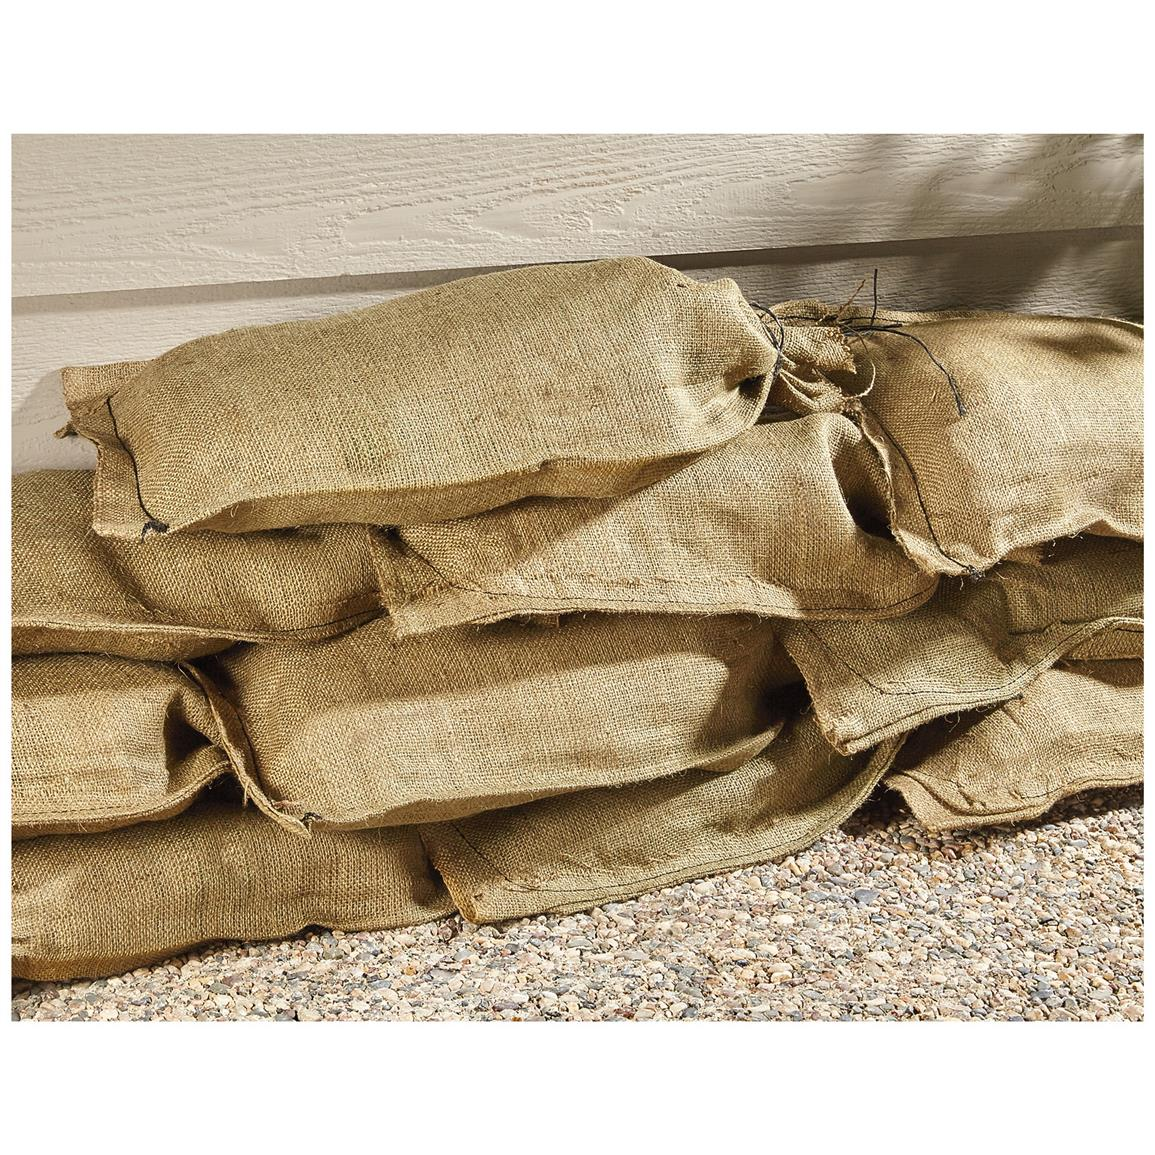 U.S. Military Issue Burlap Sand Bags, 12 Pack, New